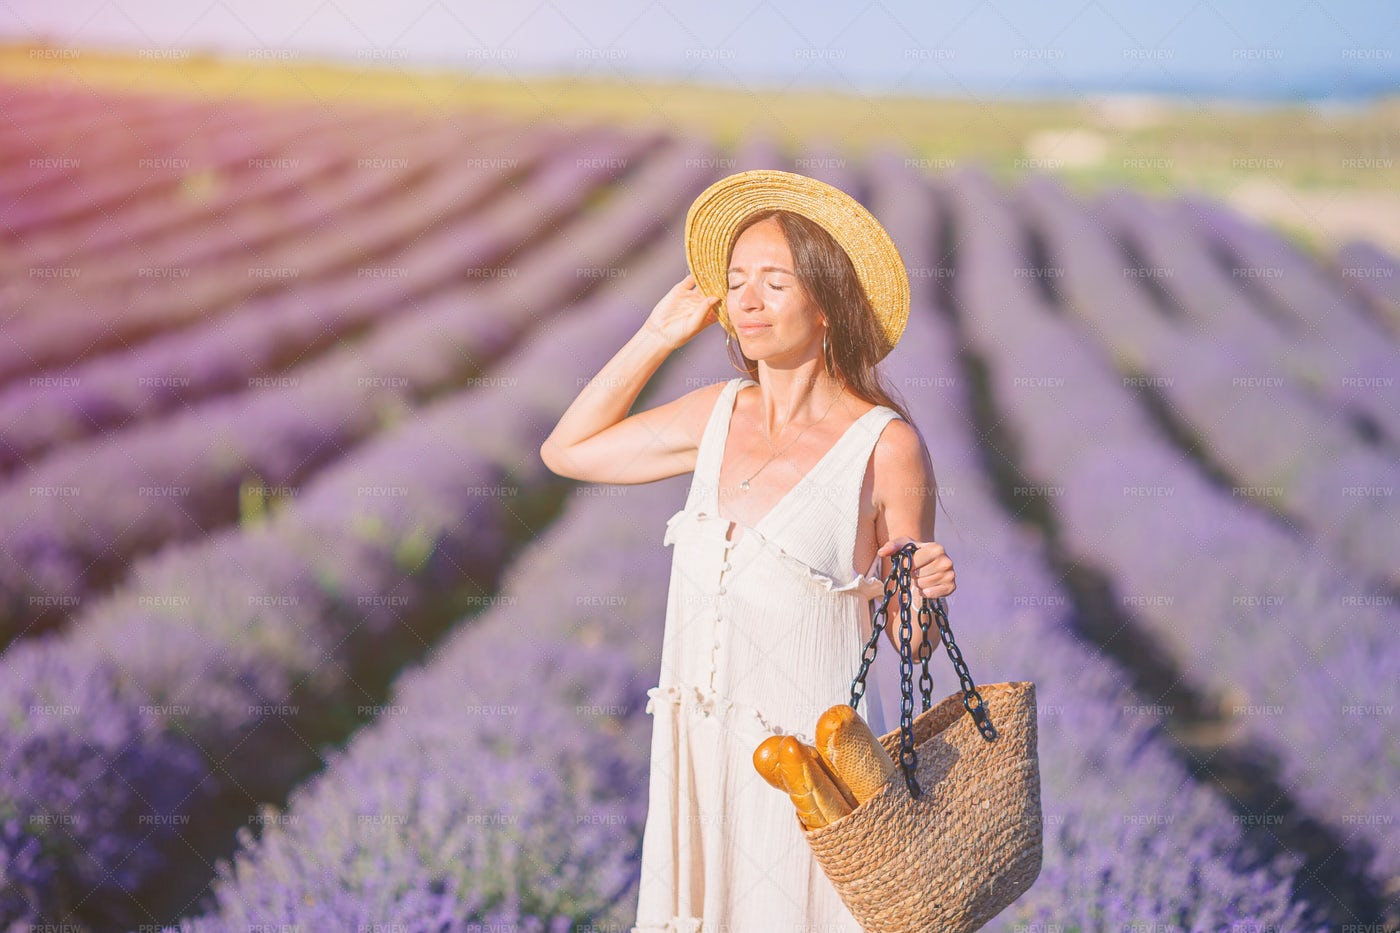 Woman In A Field Of Lavender: Stock Photos